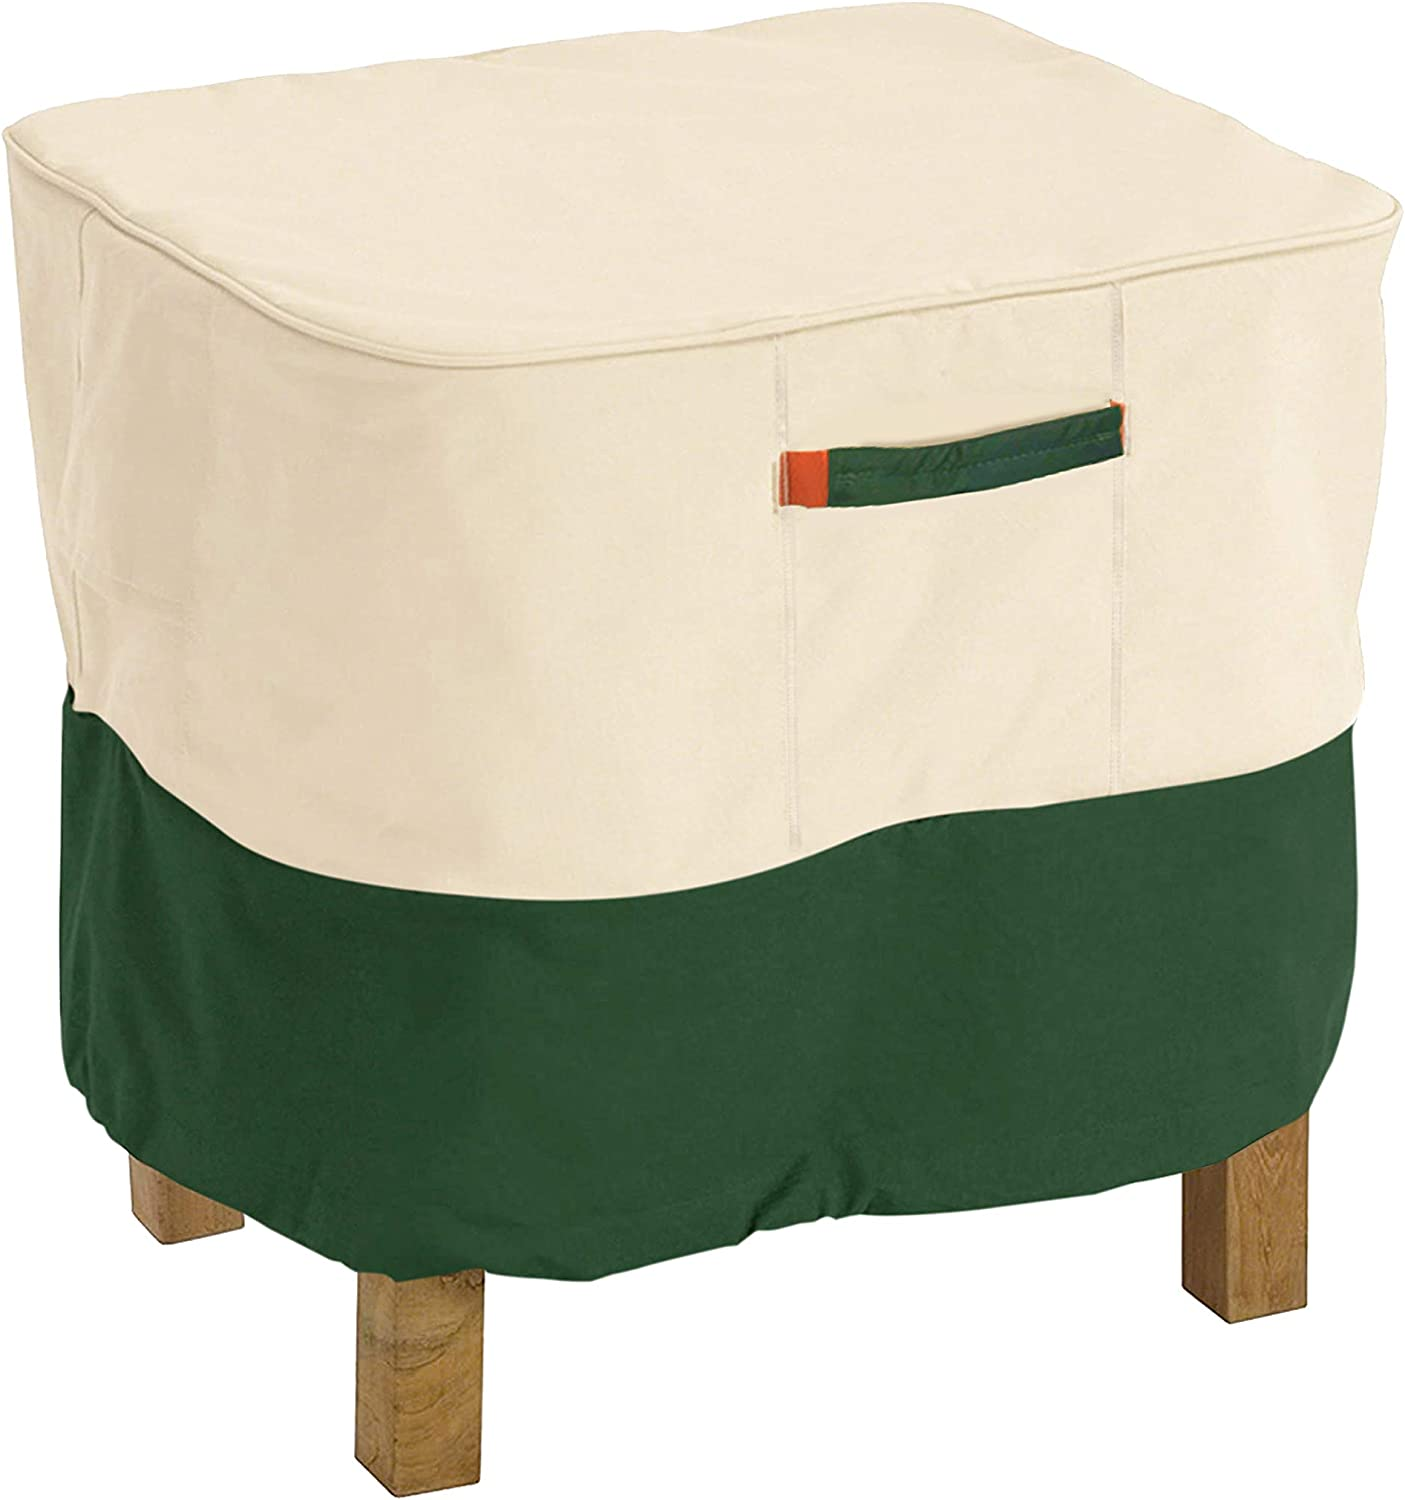 DikaSun Patio Ottoman Over item handling Cover Heavy Duty Price reduction Covers Du Furniture